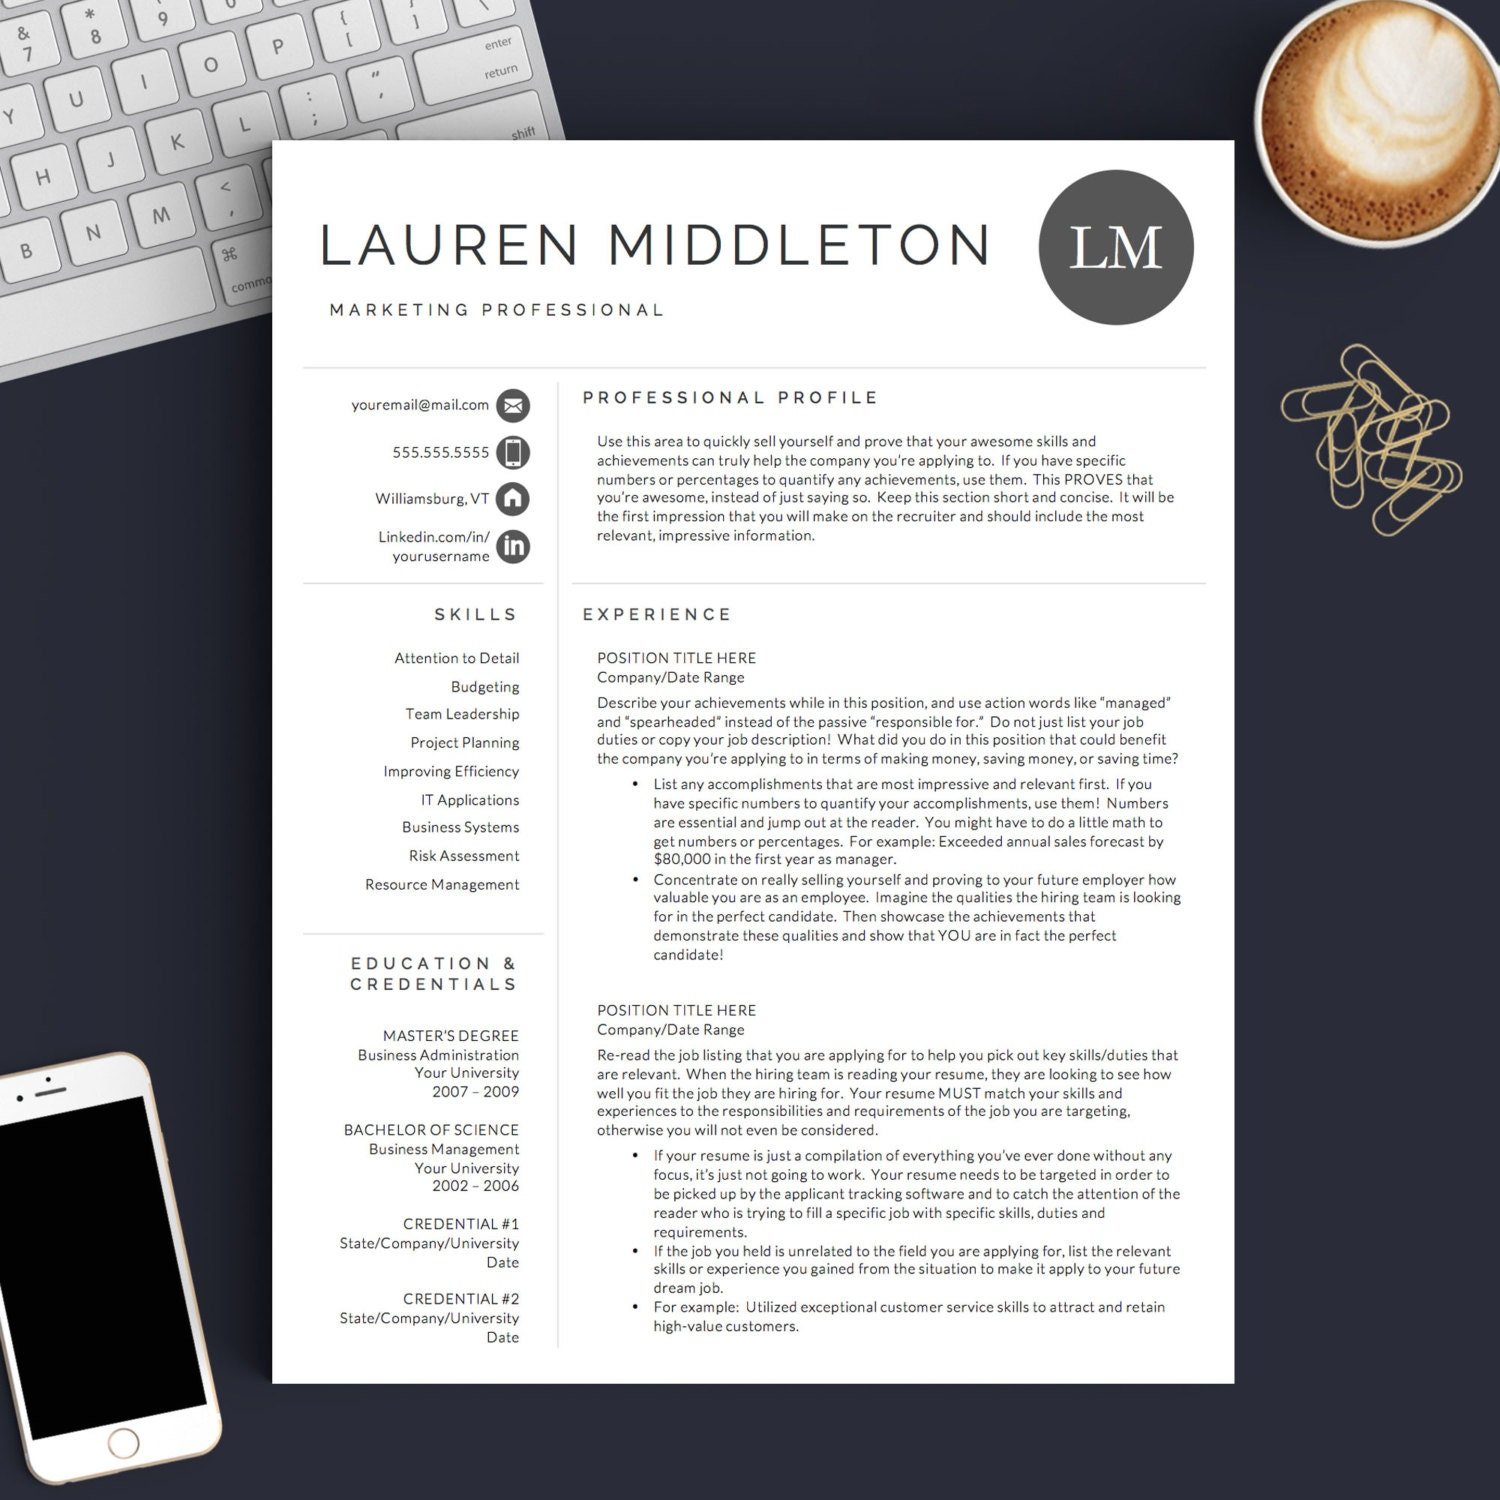 Professional Resume Word Template: Professional Resume Template For Word & Pages 1 2 And 3